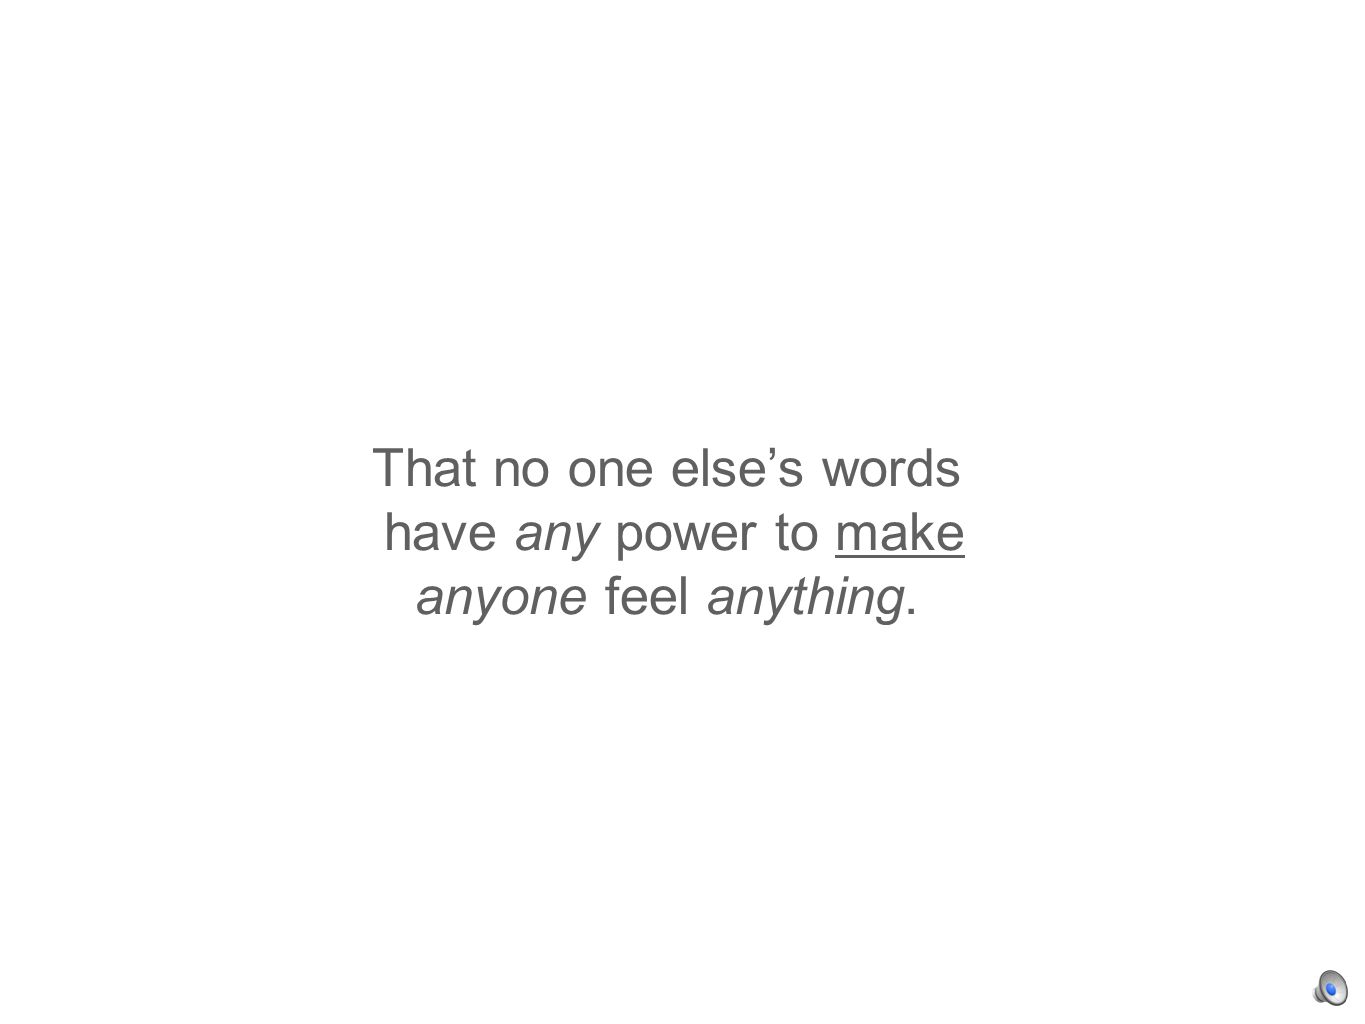 That no one elses words have any power to make anyone feel anything.